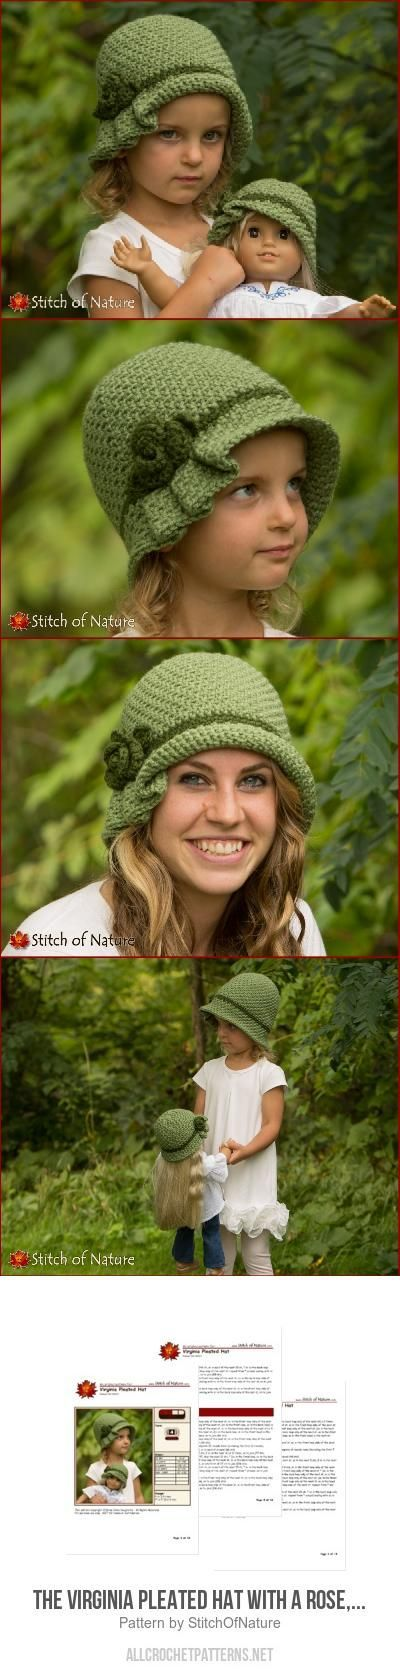 The Virginia Pleated Hat with a Rose, Cloche 1920s Hat crochet pattern